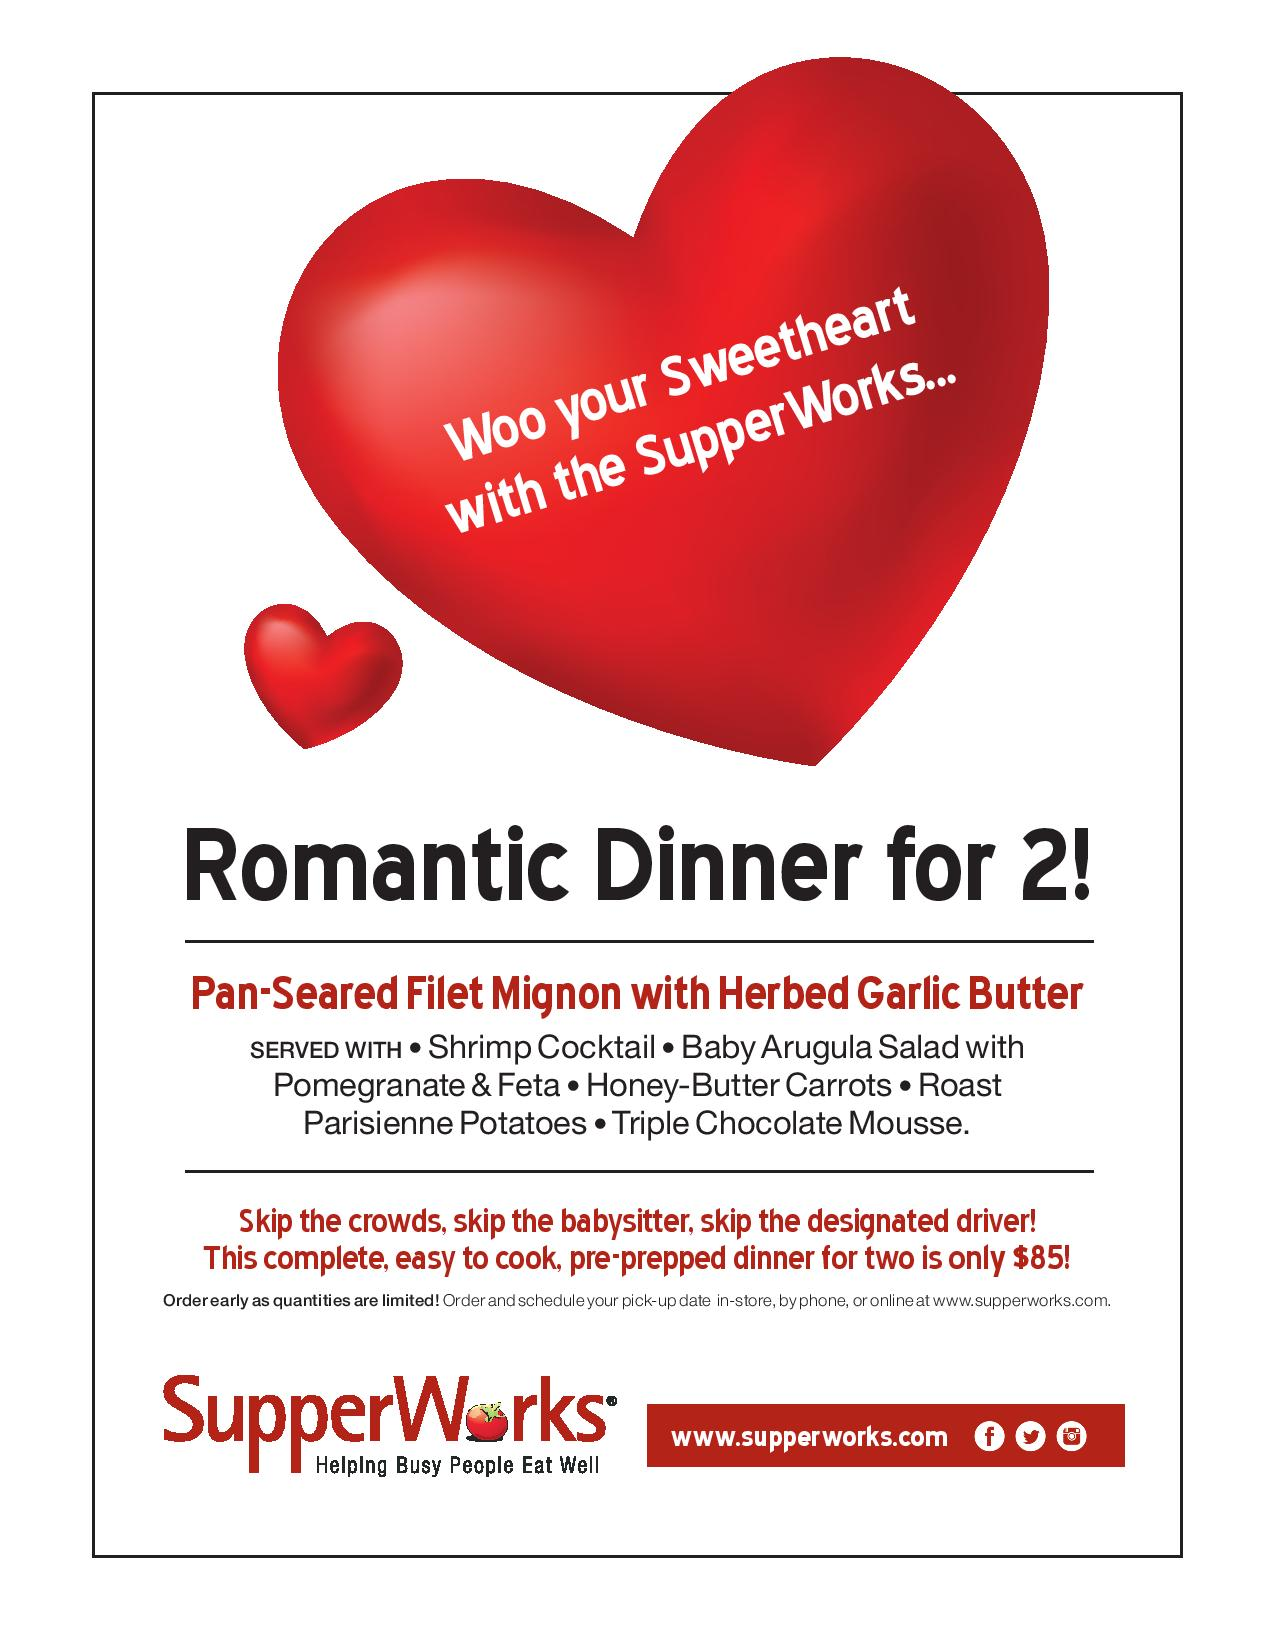 Valentines Special For Wbn Members Romantic Dinner For 2 With Supperworks